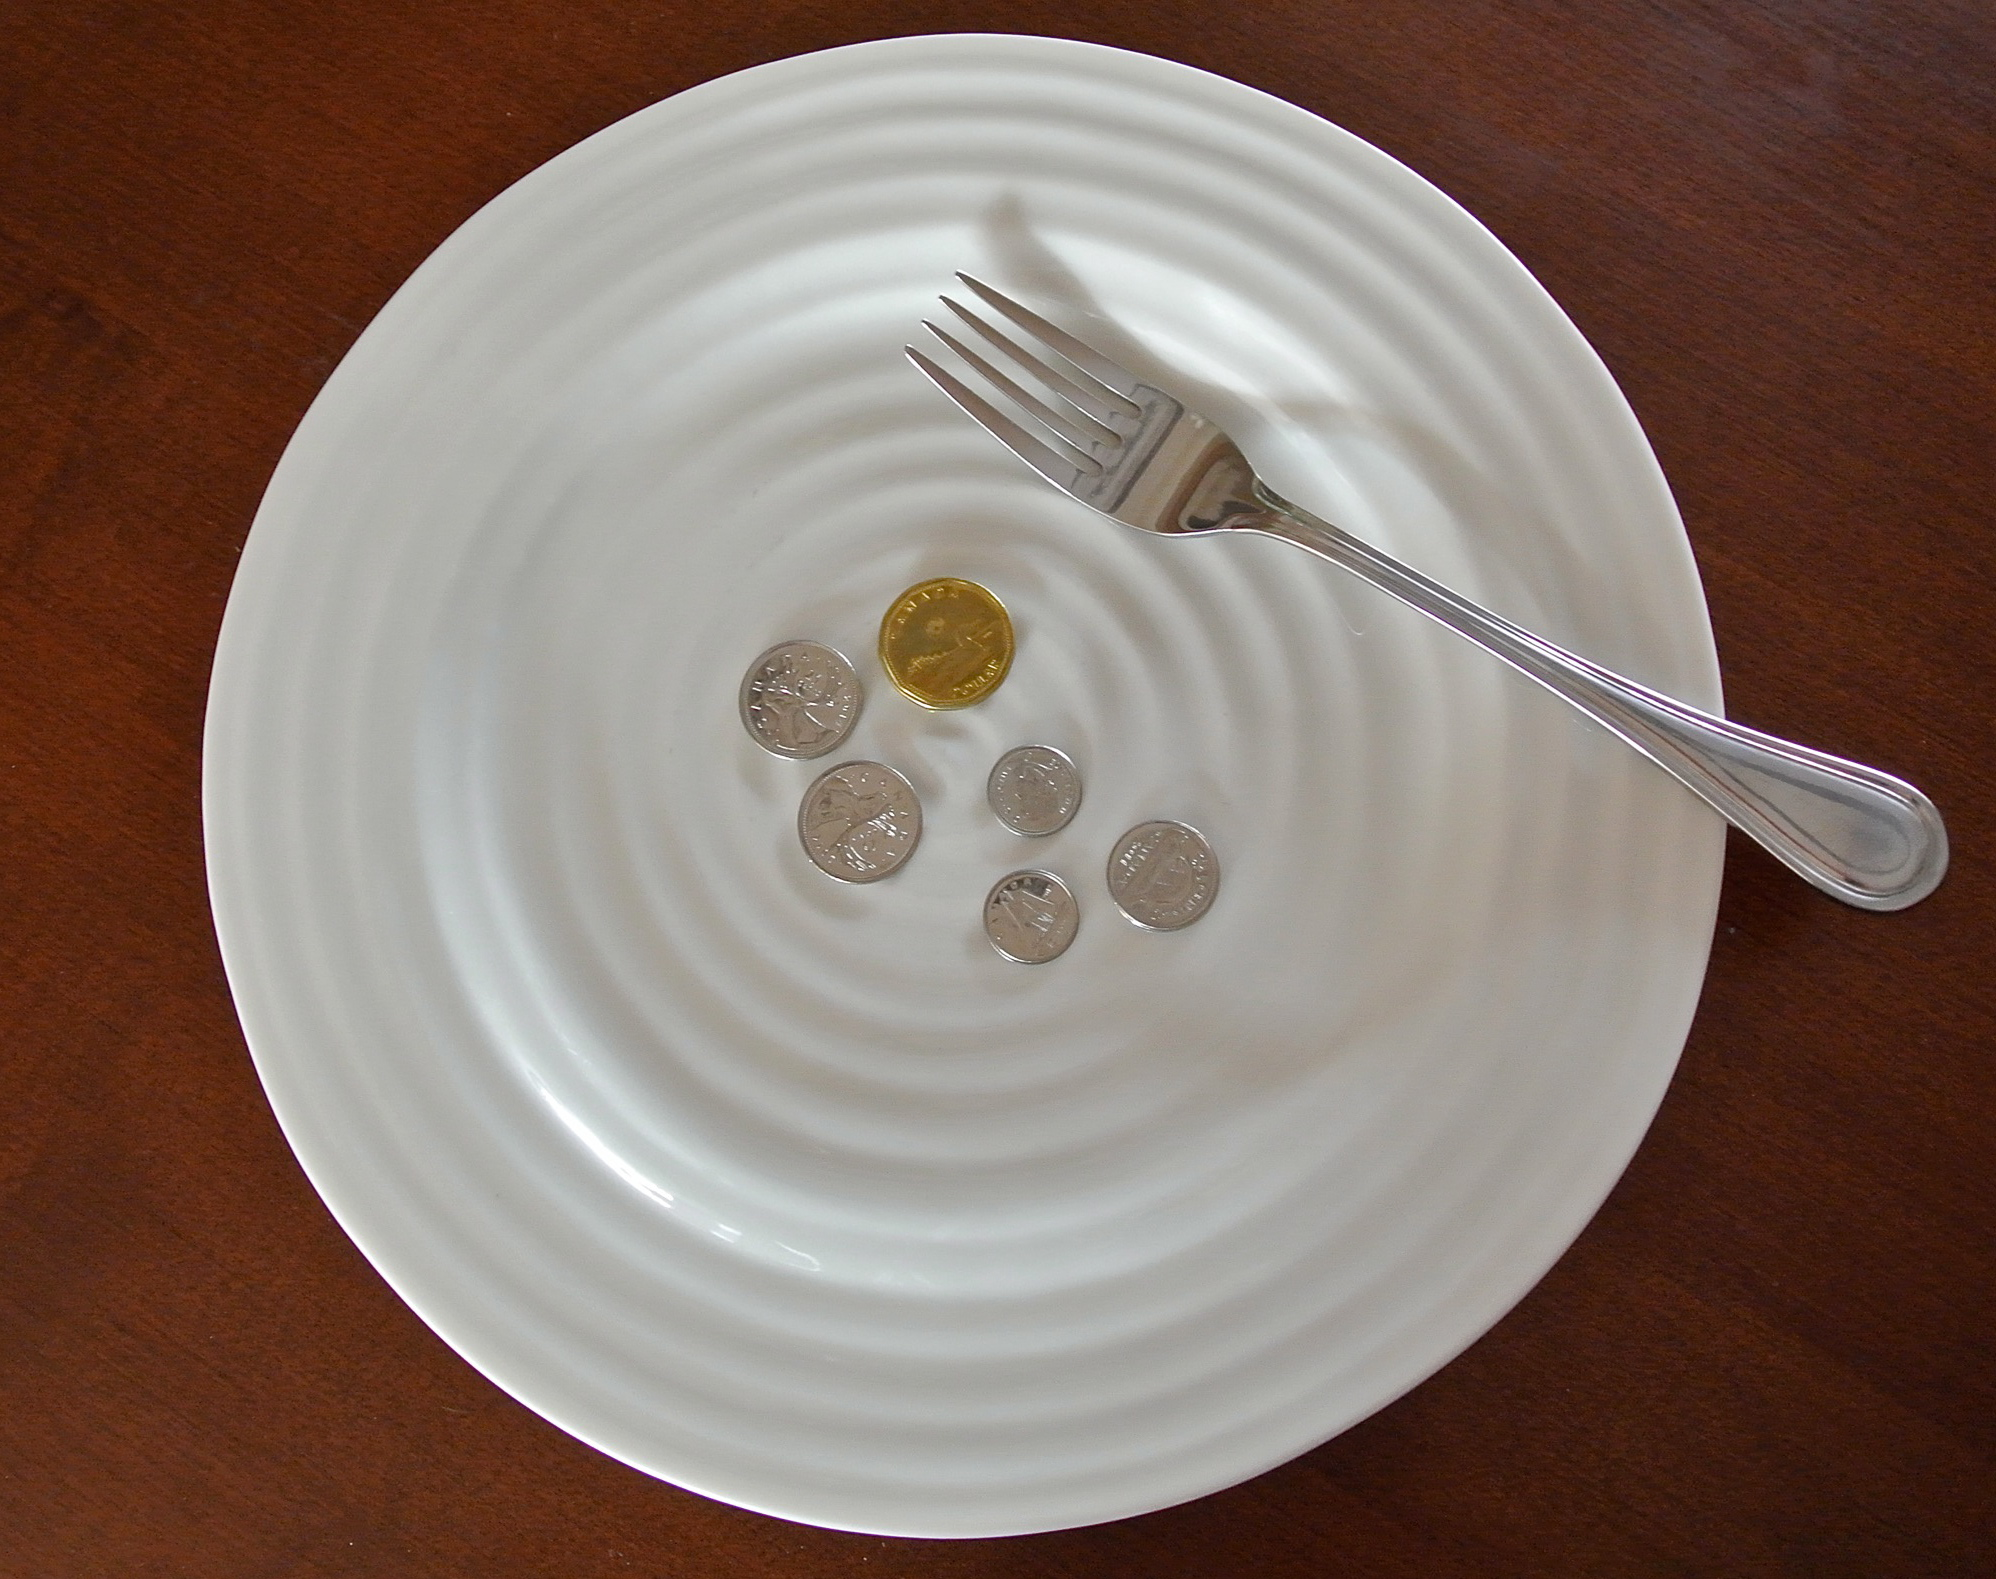 The Challenge: Can You Live On $1.75 A Day?